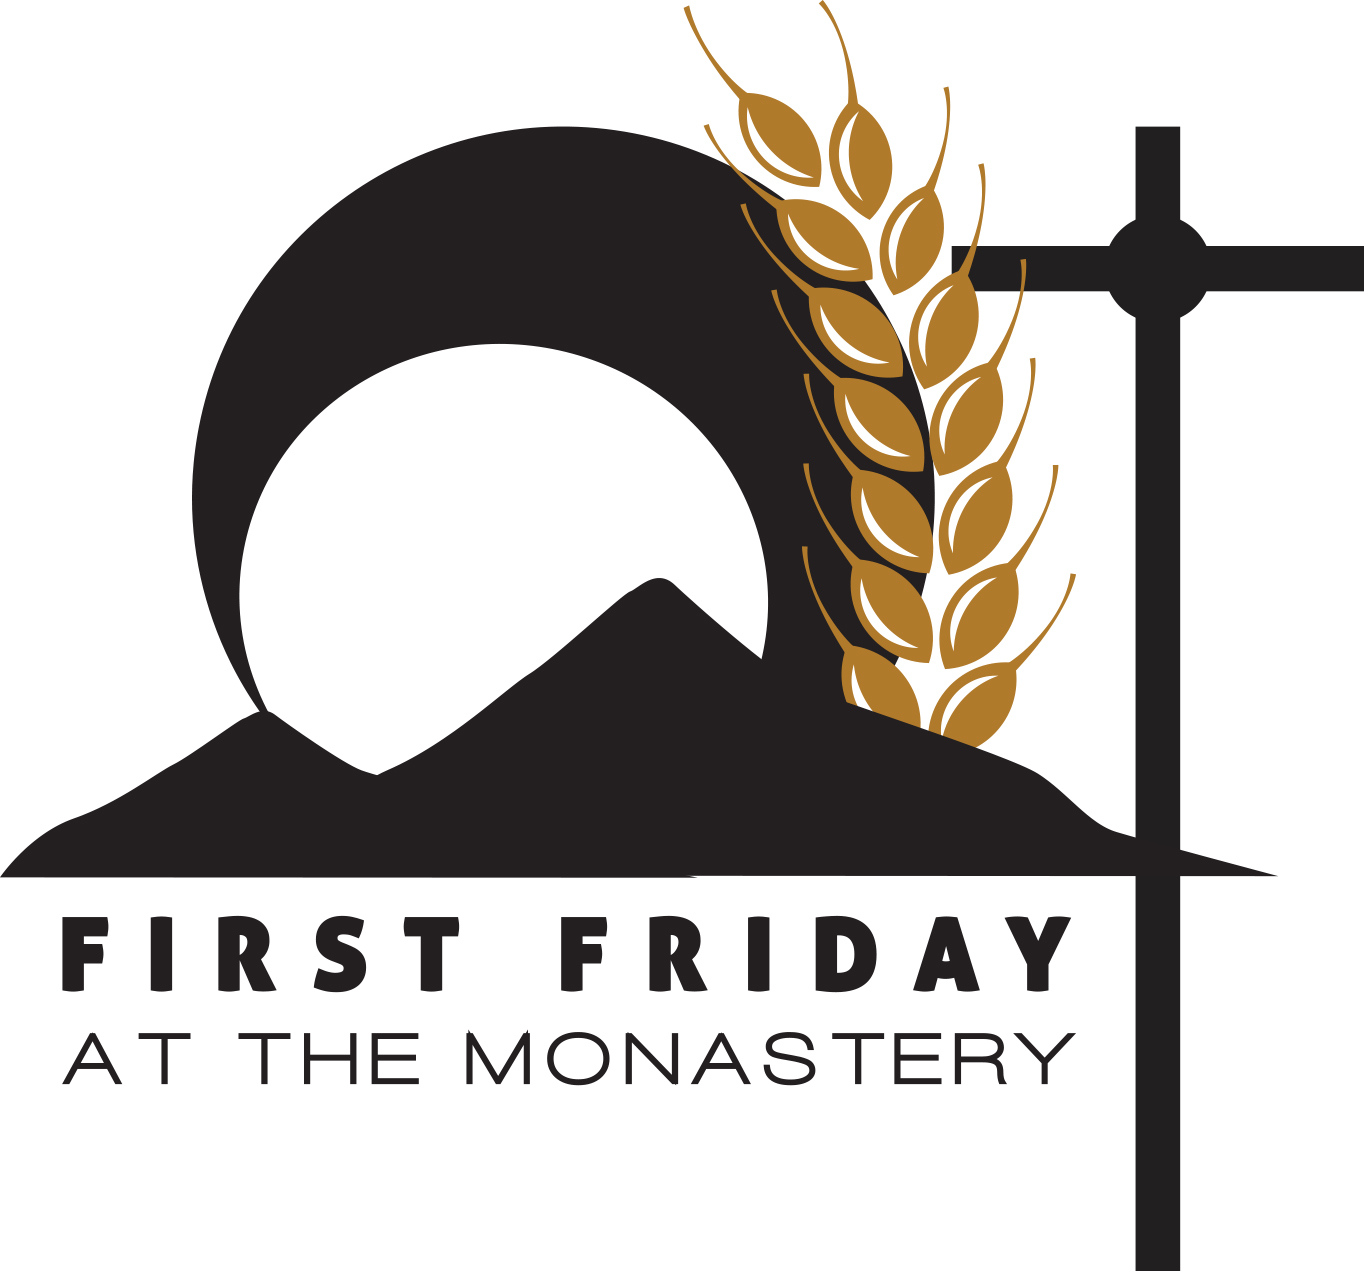 First Friday at the Monastery - AUGUST